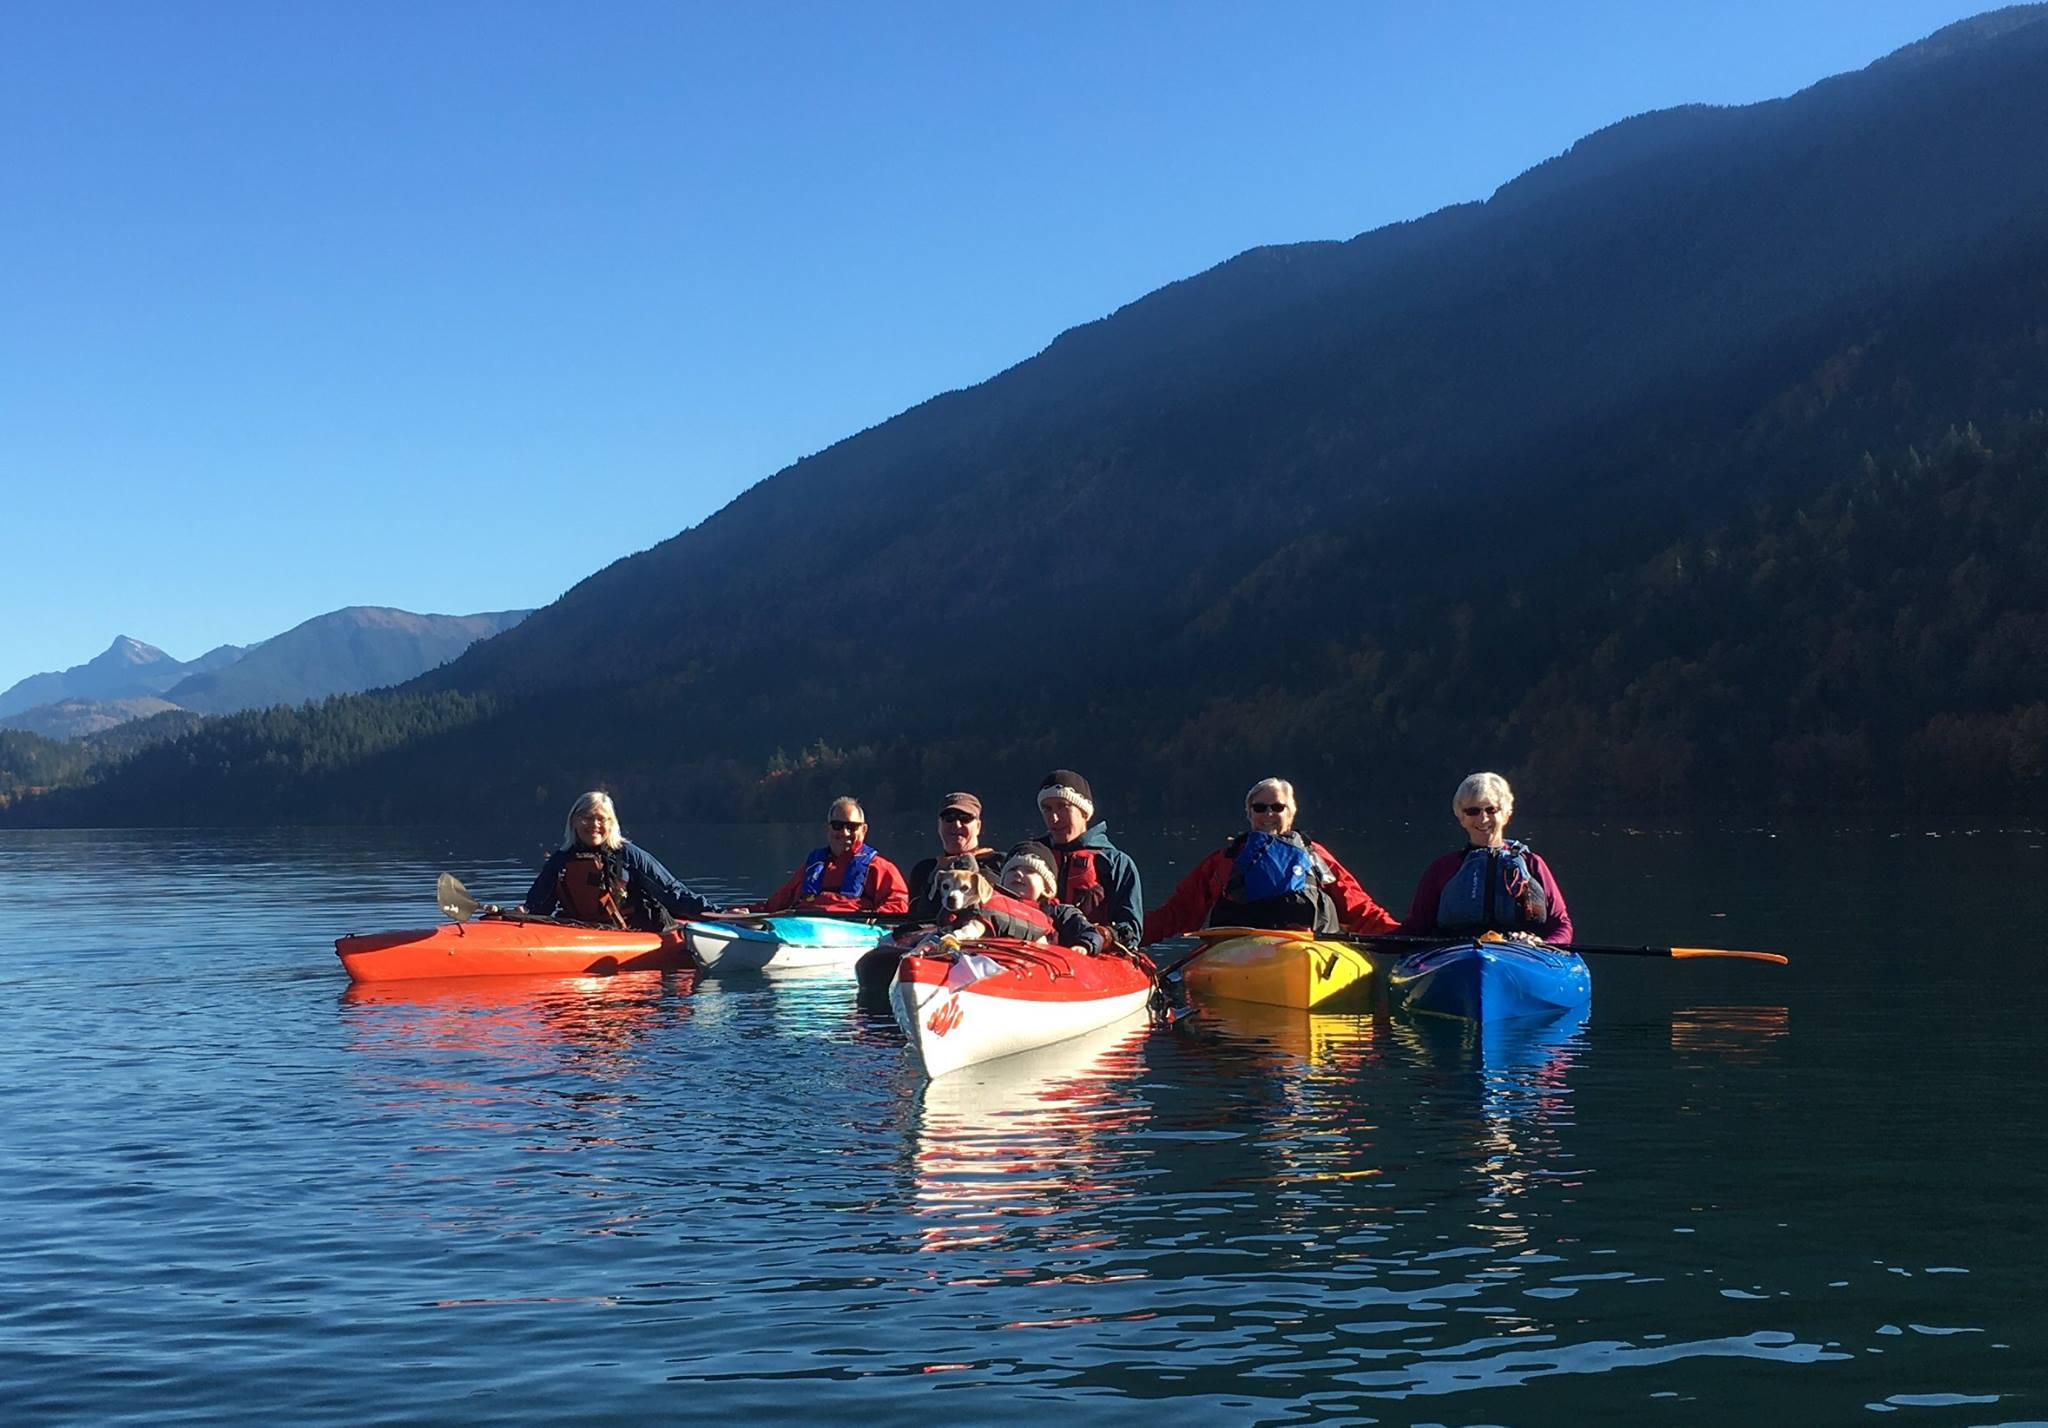 Cultus Lake Paddles - Click on the photo to learn more about our free volunteer-led, lake paddles.